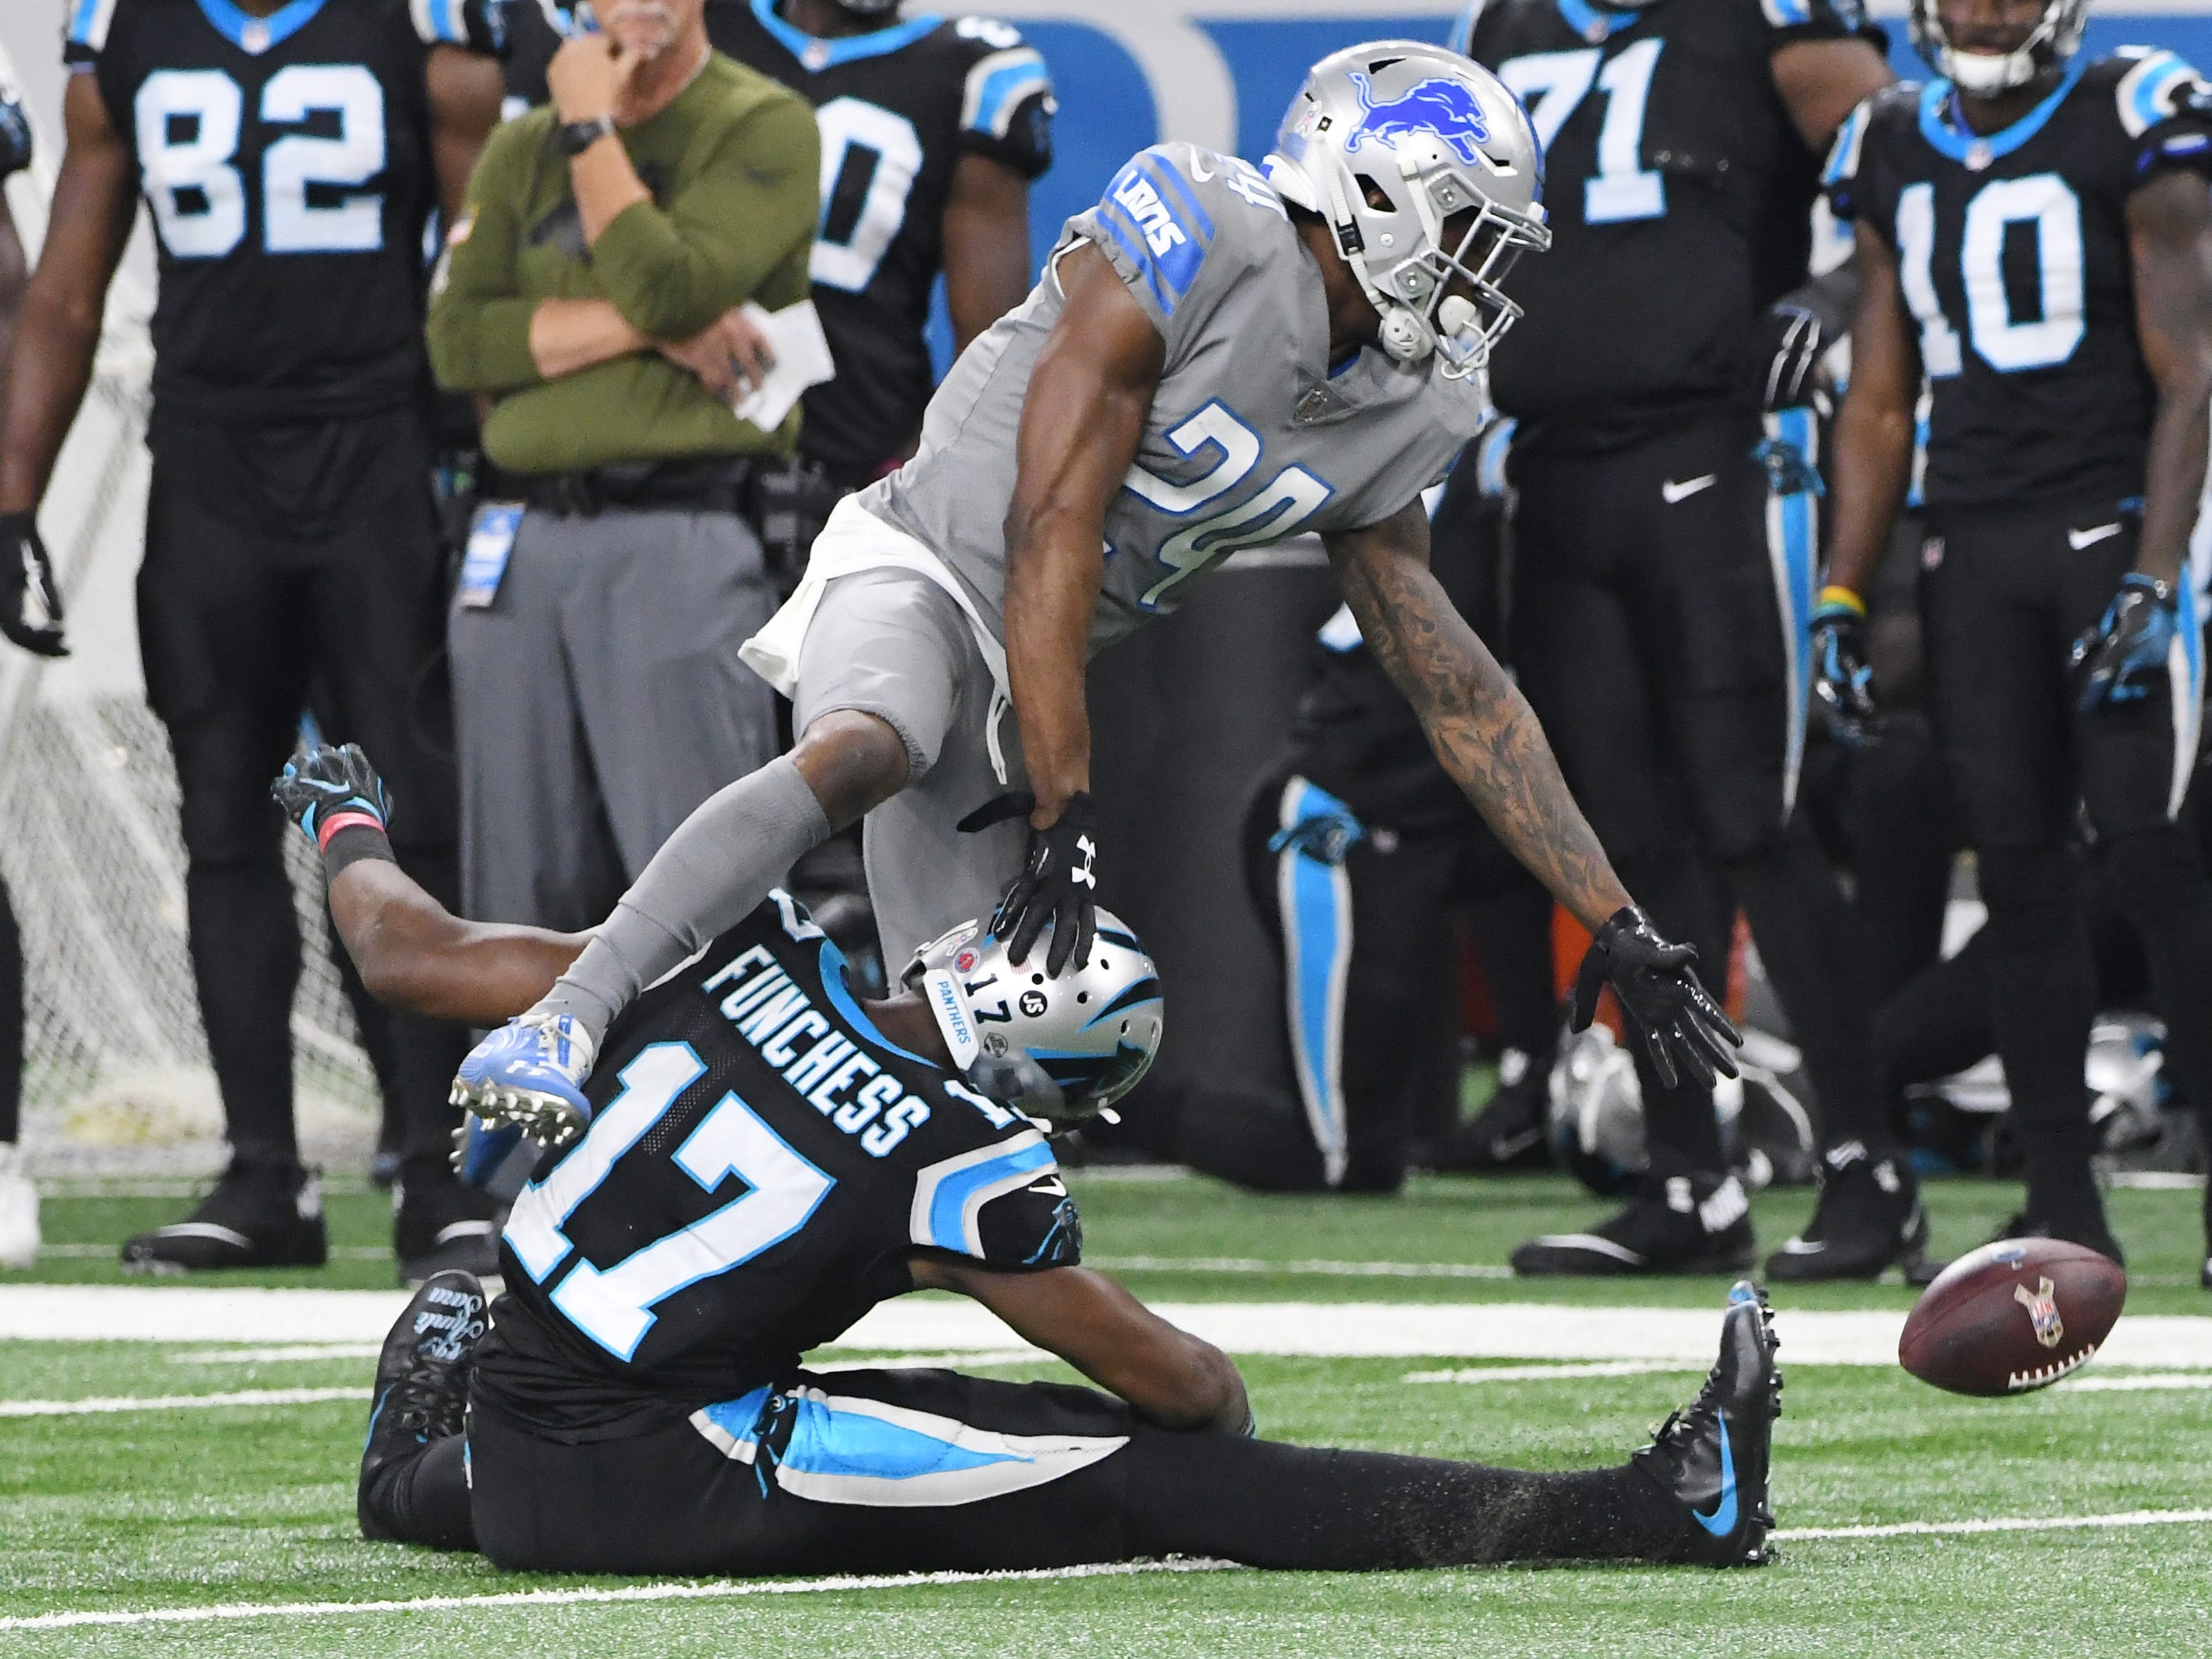 Lions cornerback Nevin Lawson tries to grab an interception on a bobbled pass to Panthers receiver Devin Funchess (Michigan) in the second quarter.